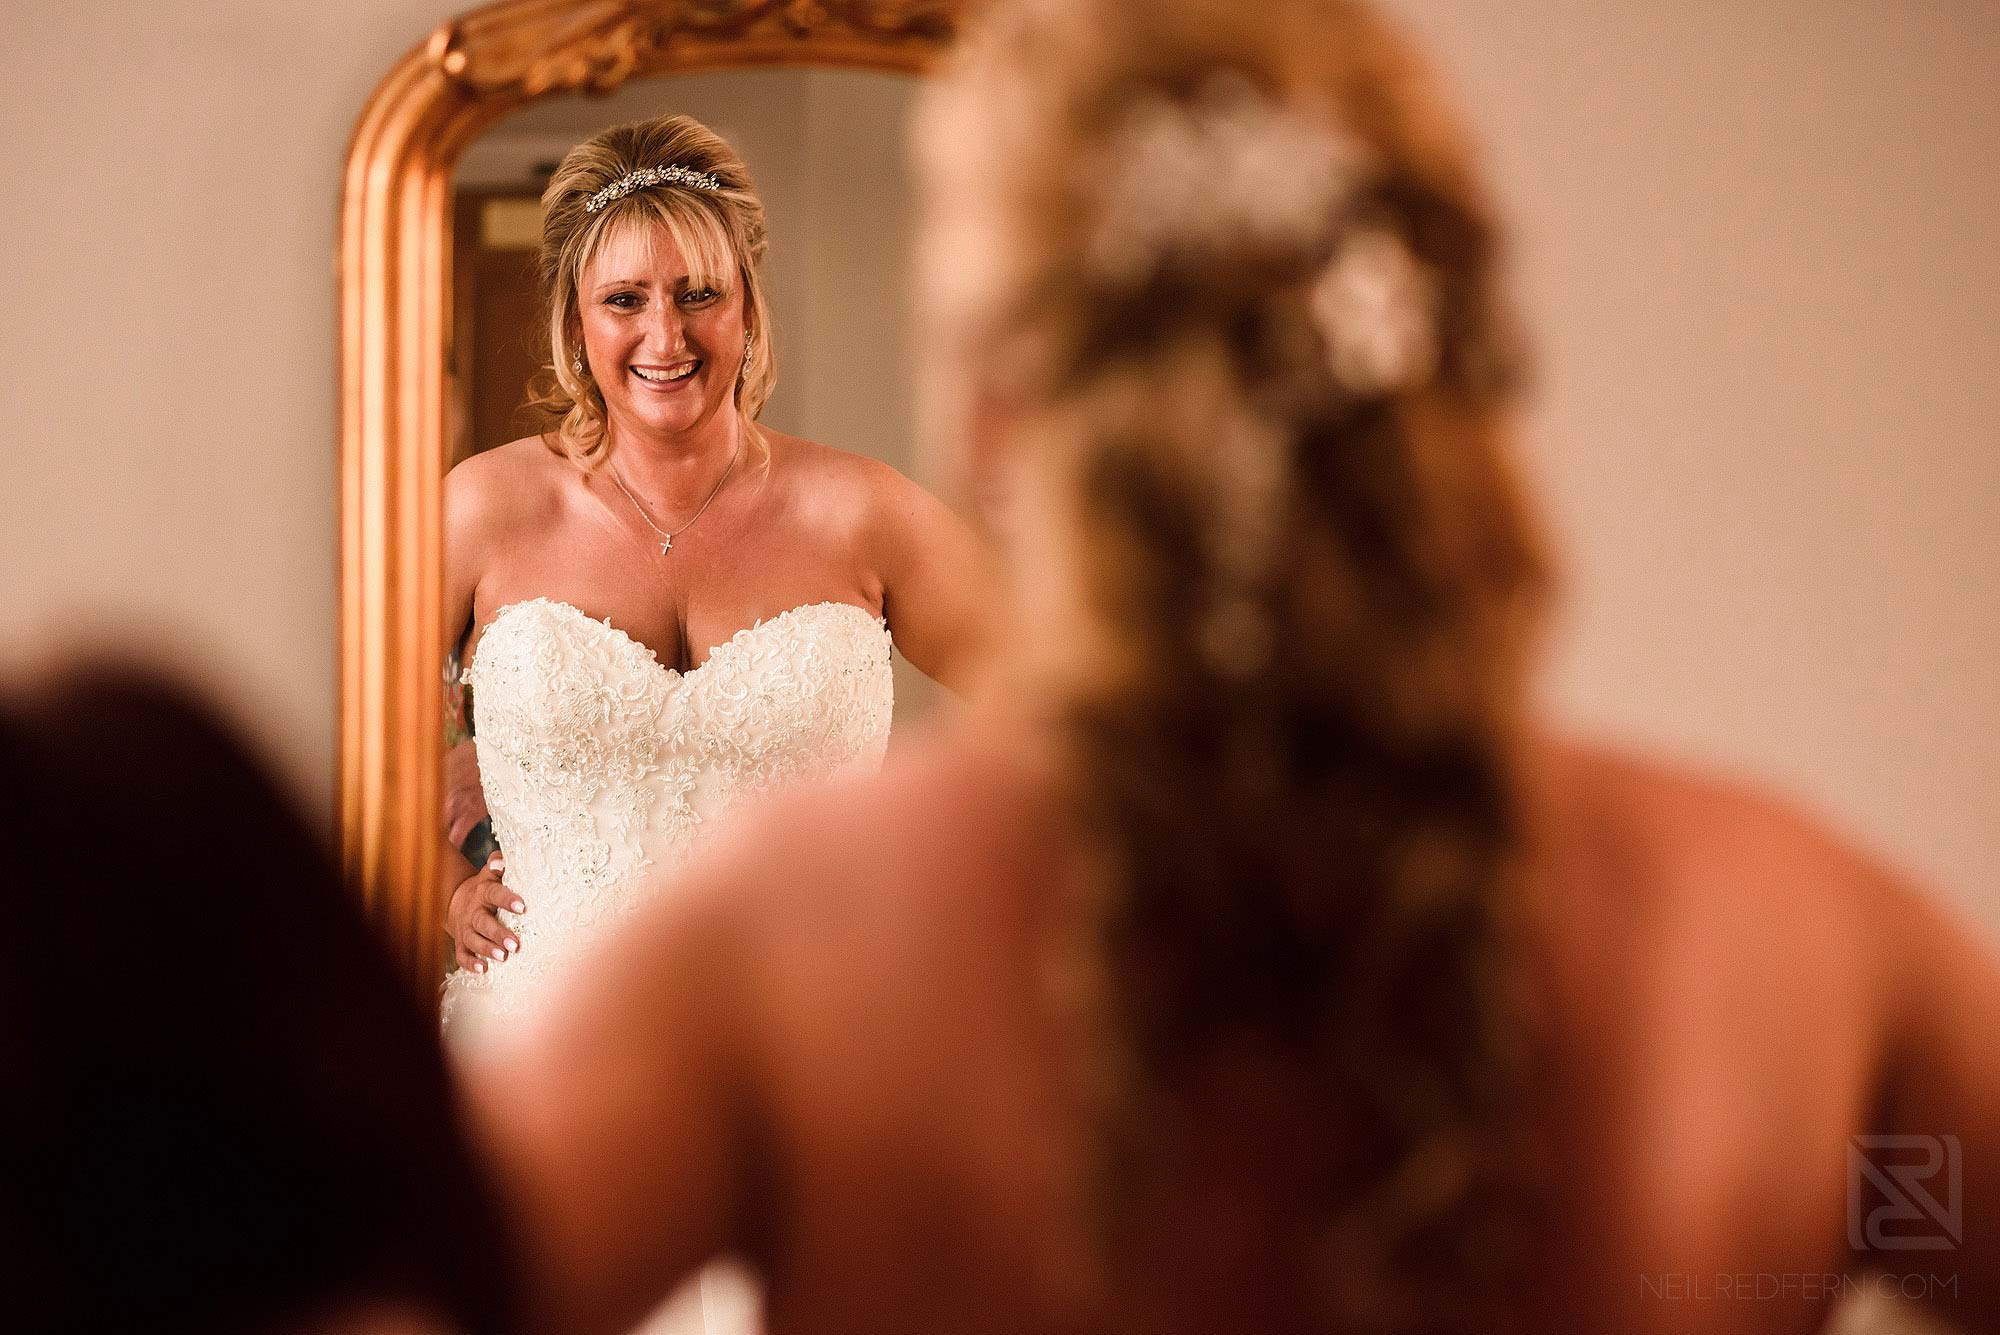 smiling bride looking in to mirror putting on wedding dress